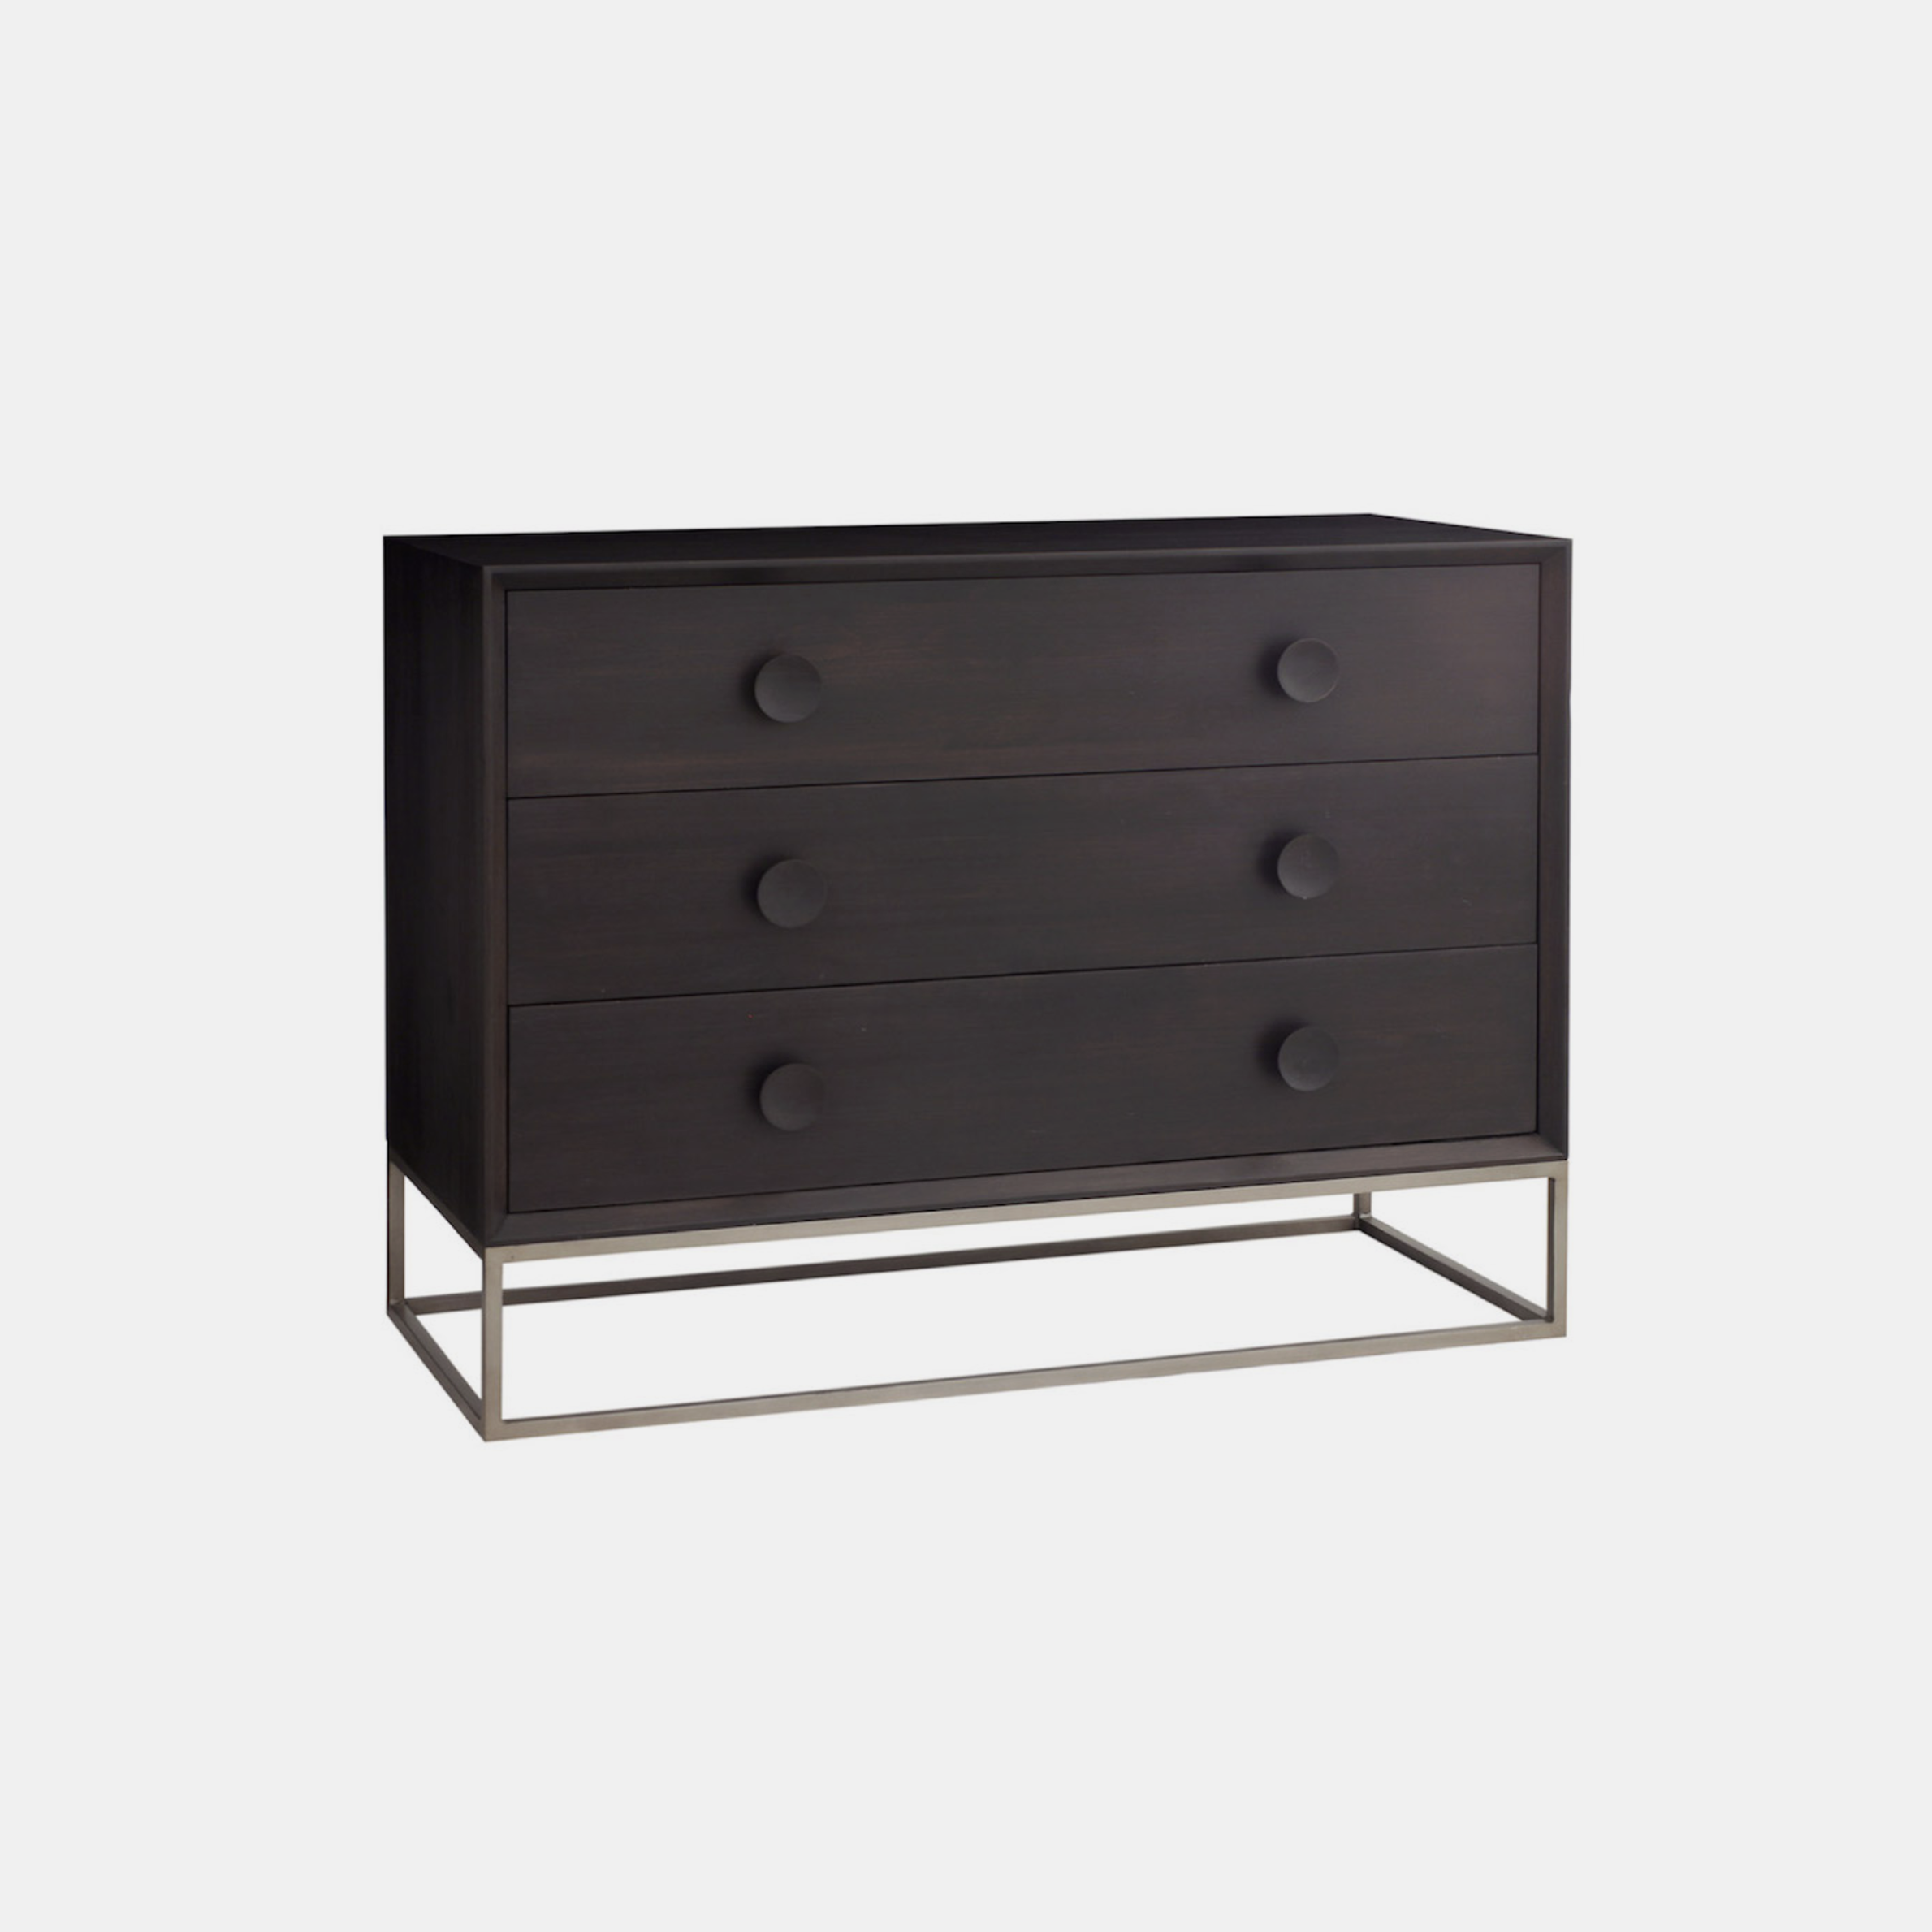 "Spencer 3-Drawer Dresser  50""l x 20""d x 33.5""h Available in several wood and metal finishes. Also available as 6-drawer dresser (62""l x 20""w x 33.5""h), 1-drawer and 2-drawer nightstands, and 4-door and 2-door/3-drawer entertainment consoles. SKU76234RFH"